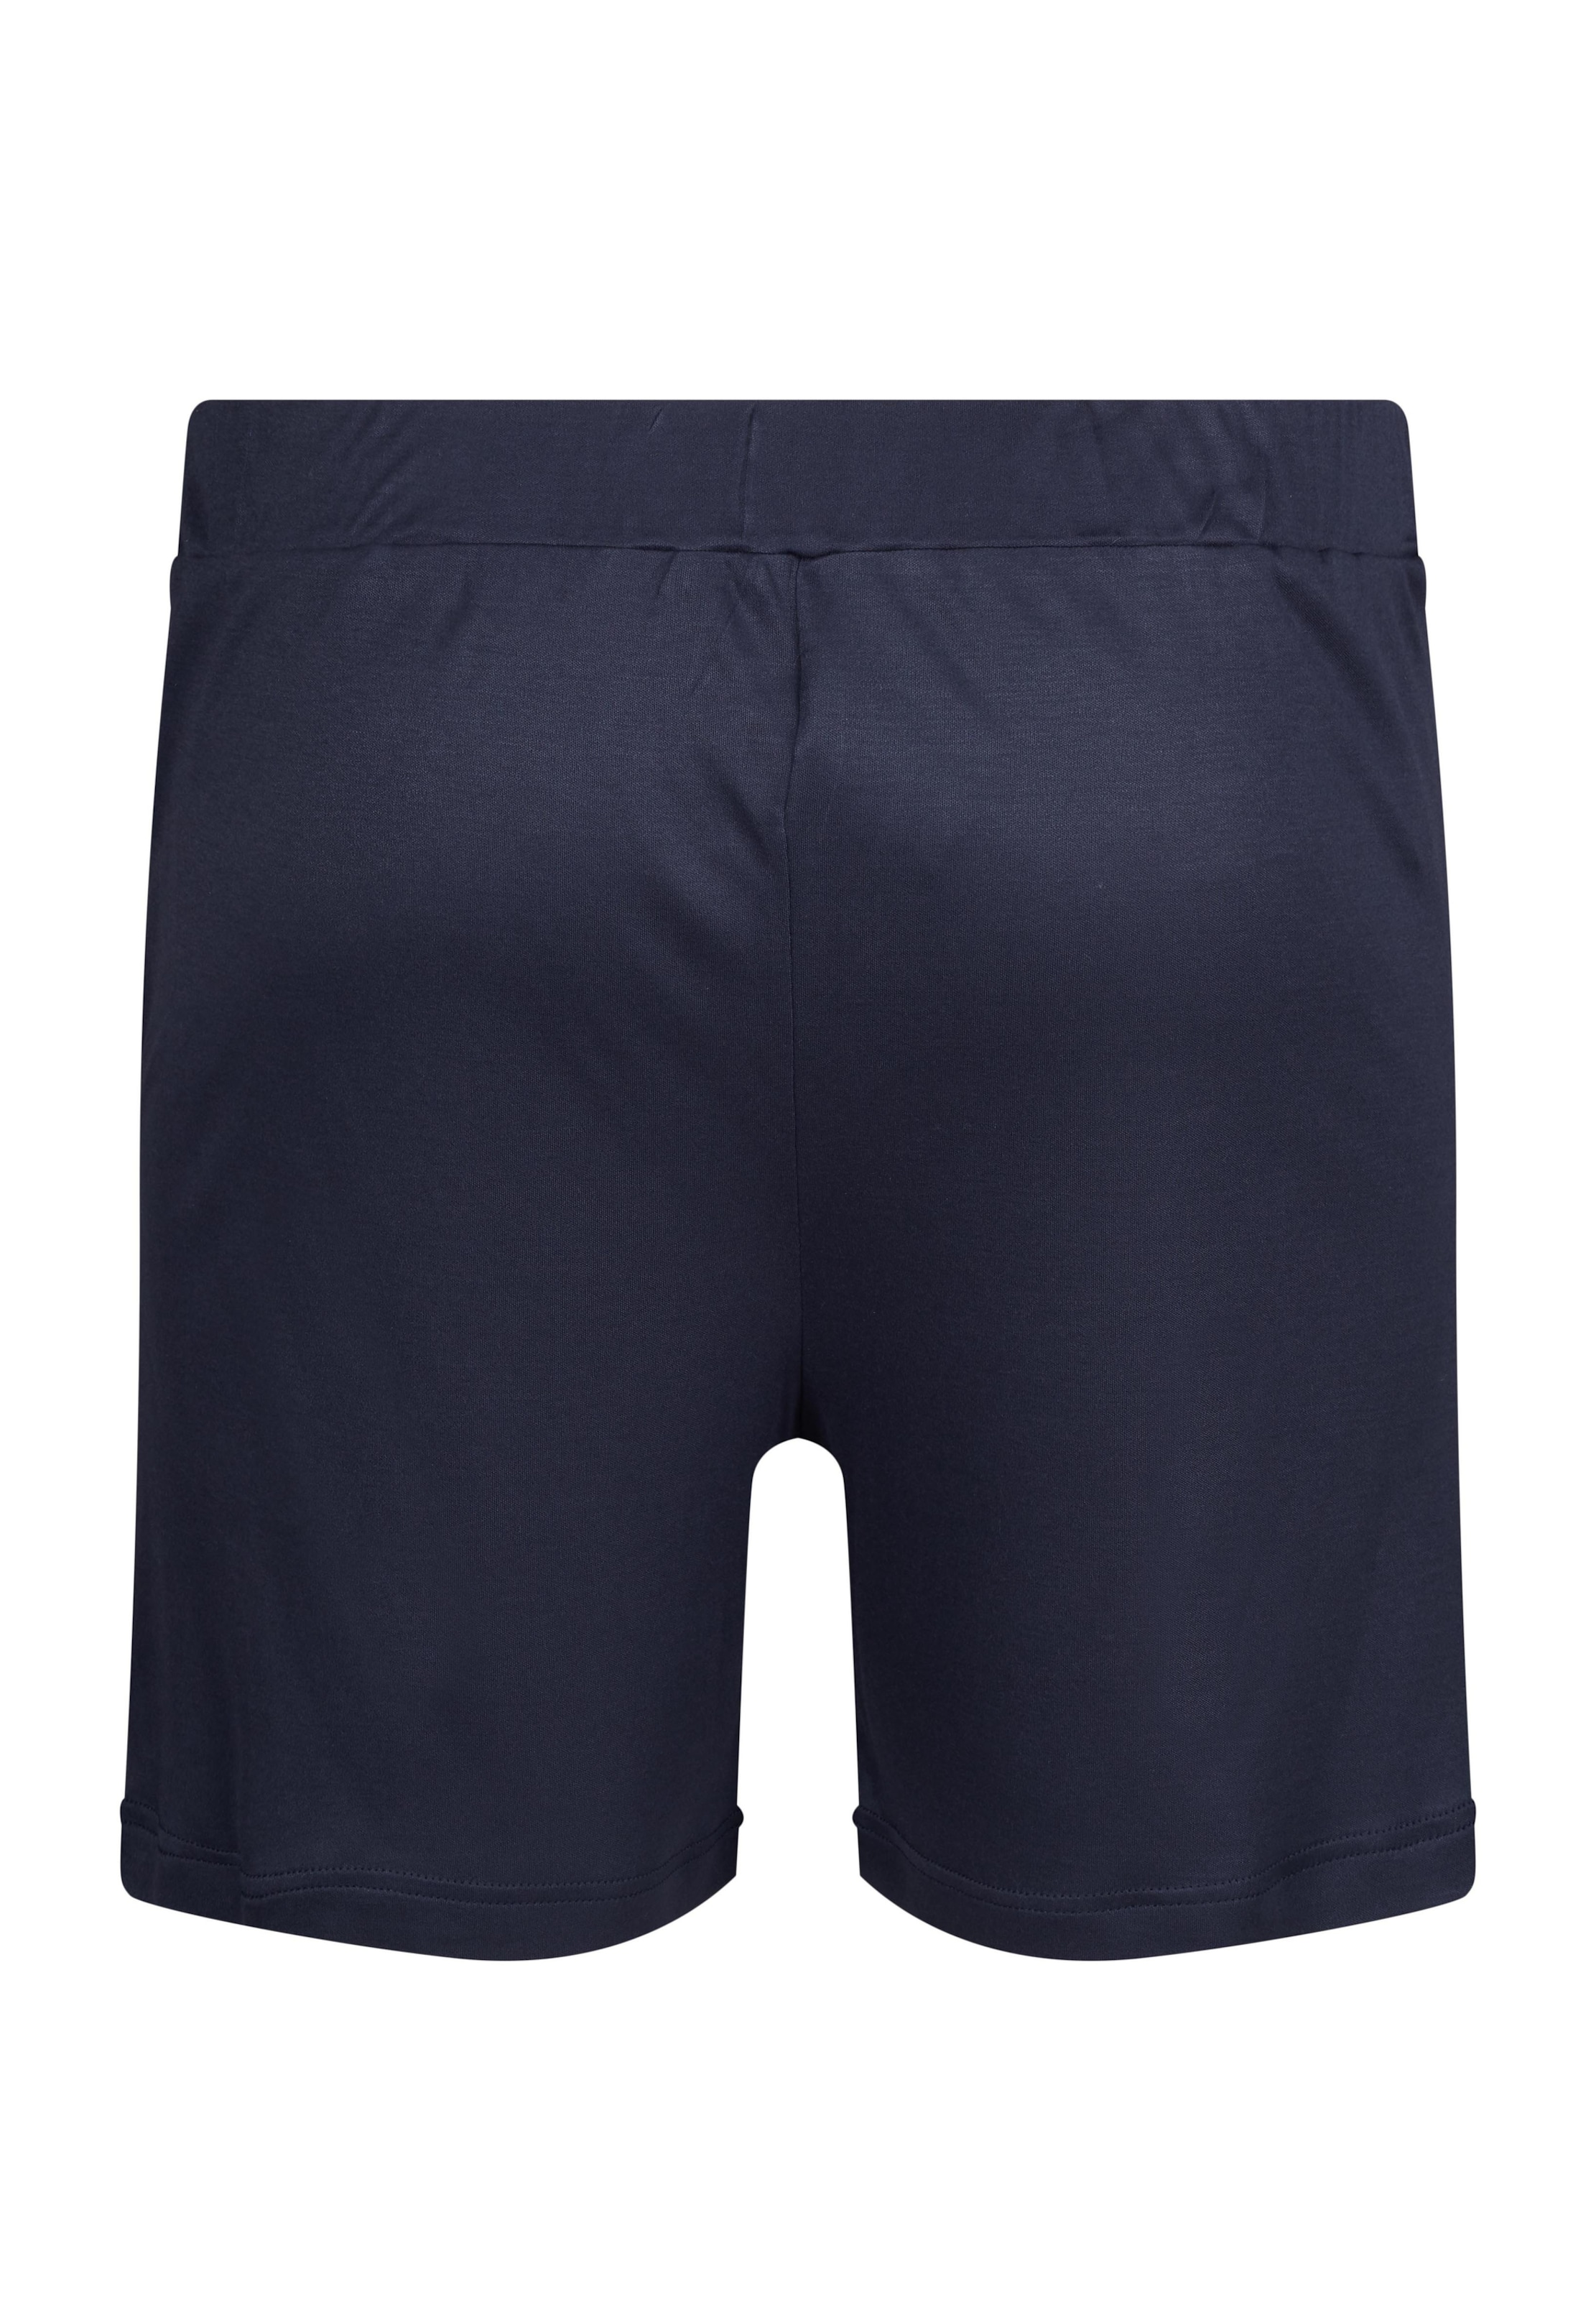 Huber Dunkelblau In Huber Sleep Shorts 3Ljq5c4AR